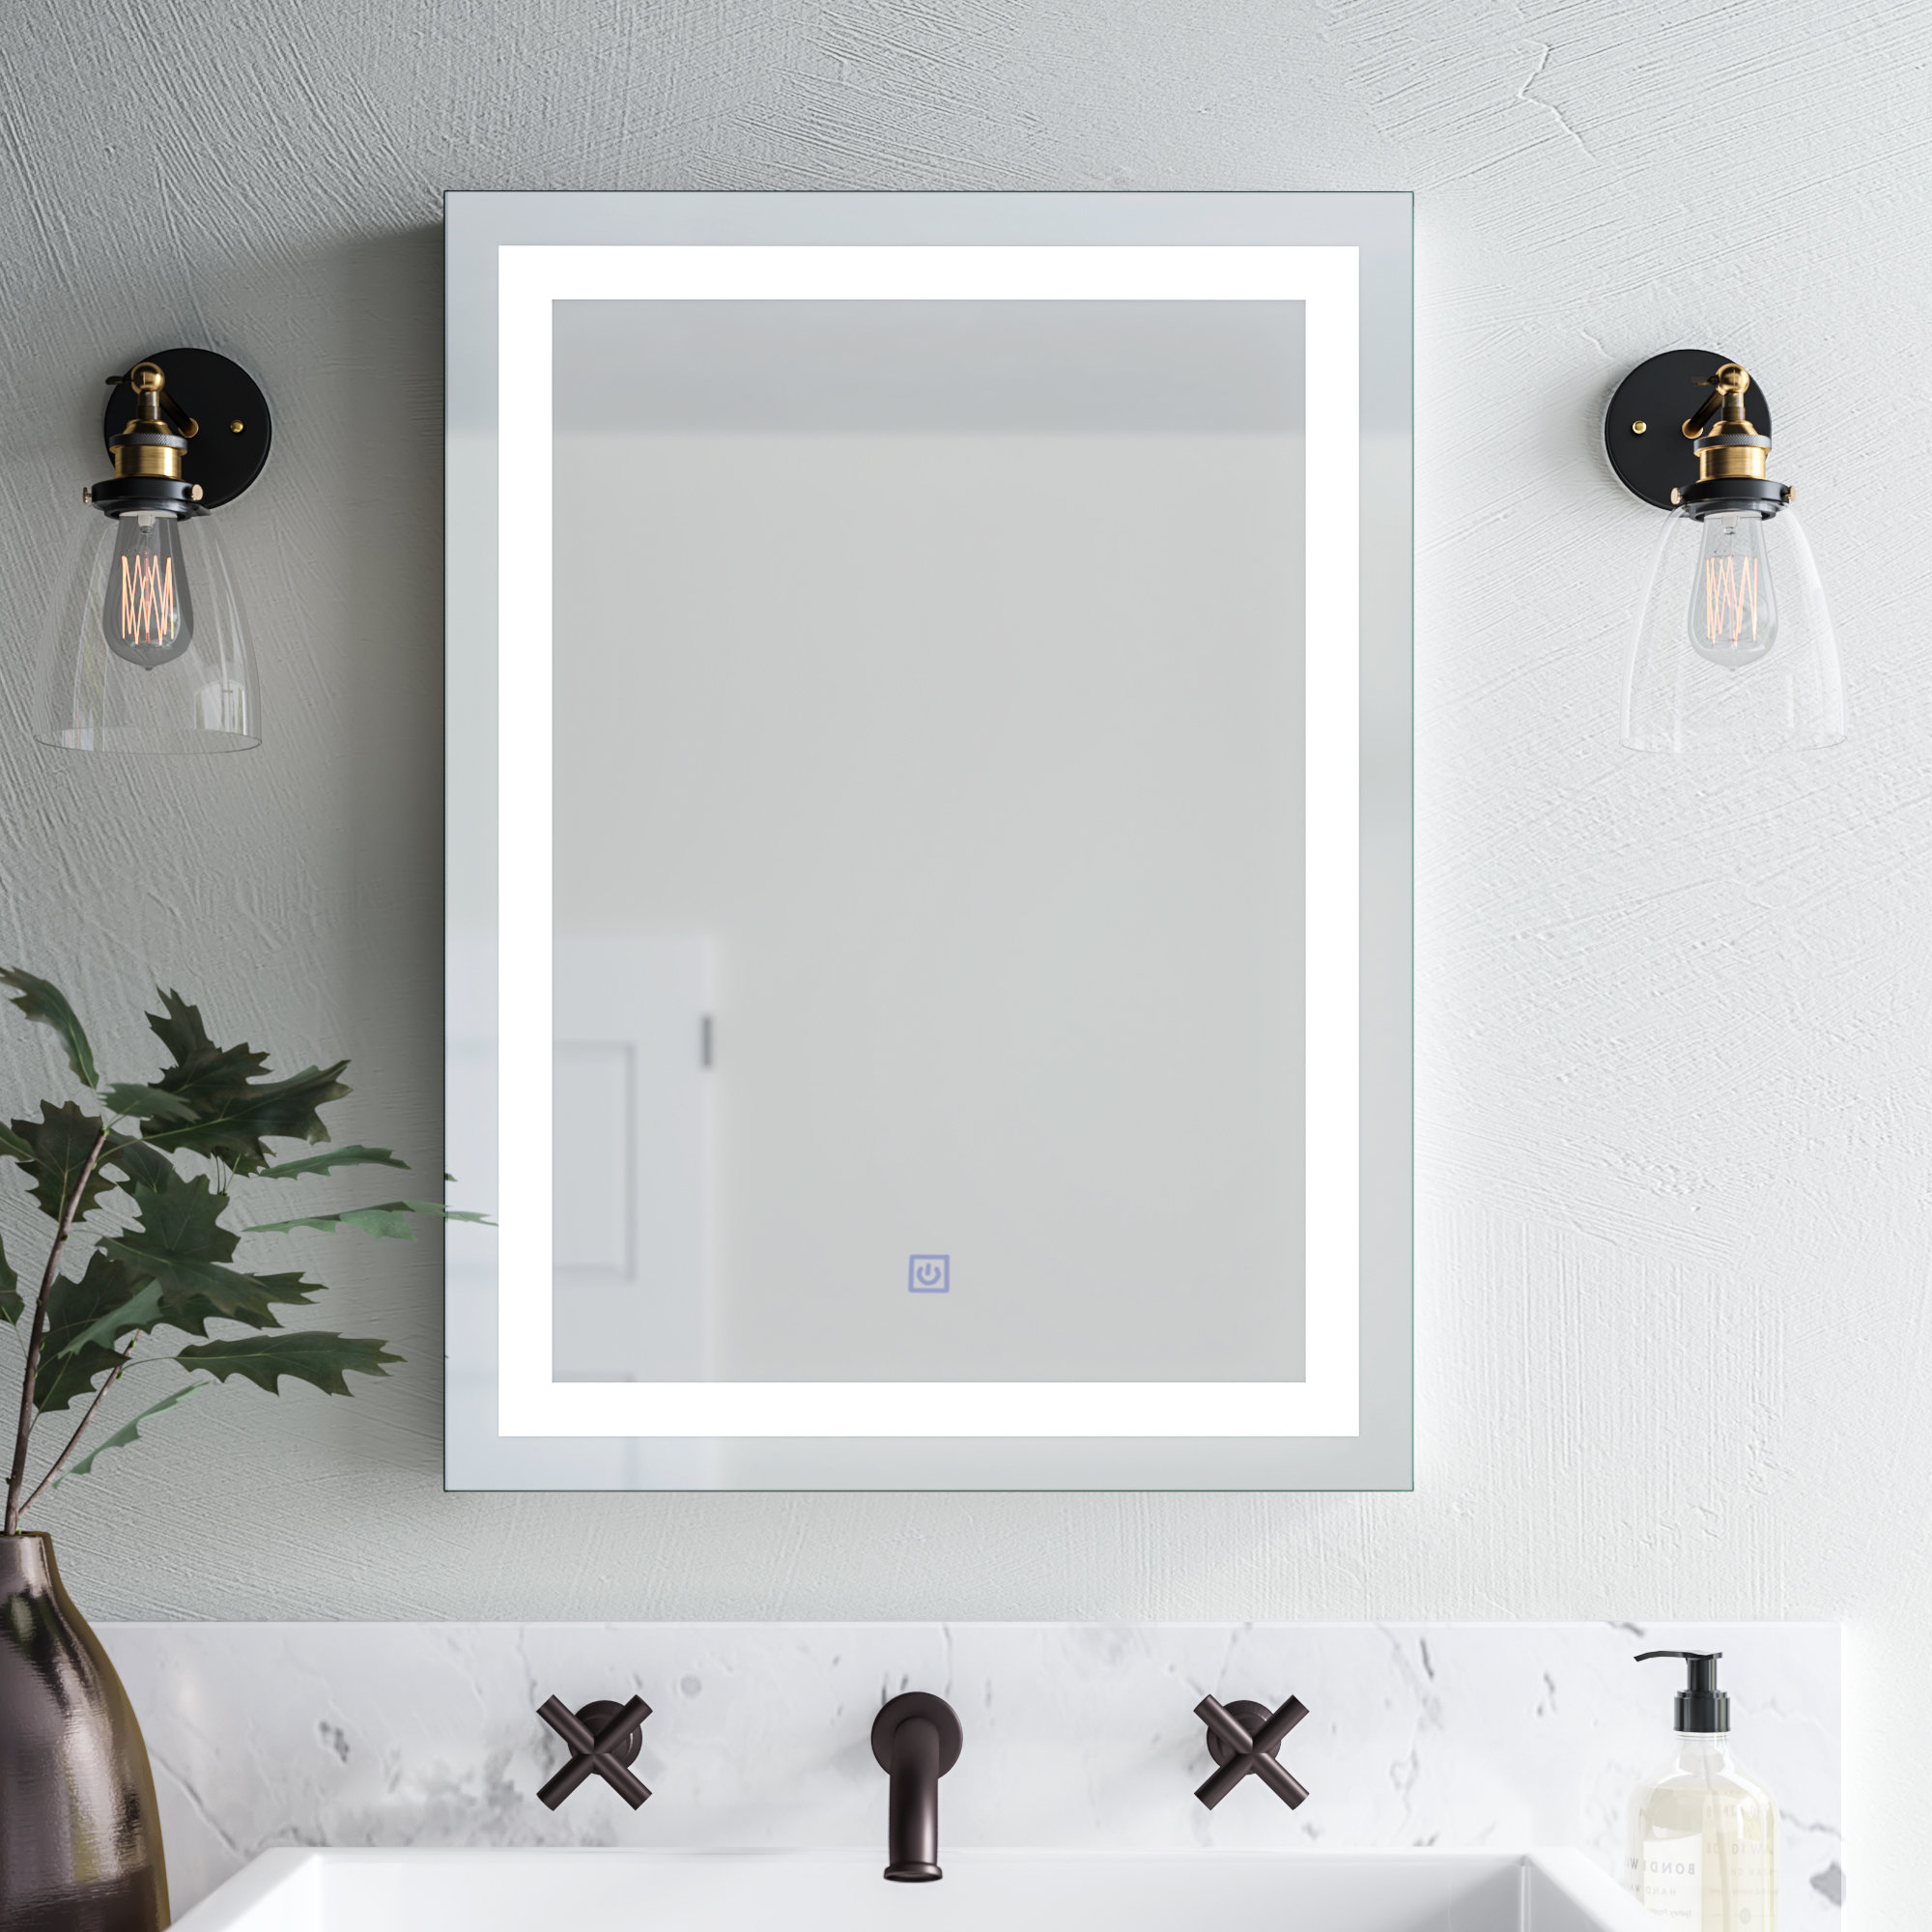 Most Popular Contemporary Bathroom Wall Mirrors With Regard To Butcher Illuminated Modern & Contemporary Bathroom Wall Mirror (View 4 of 20)